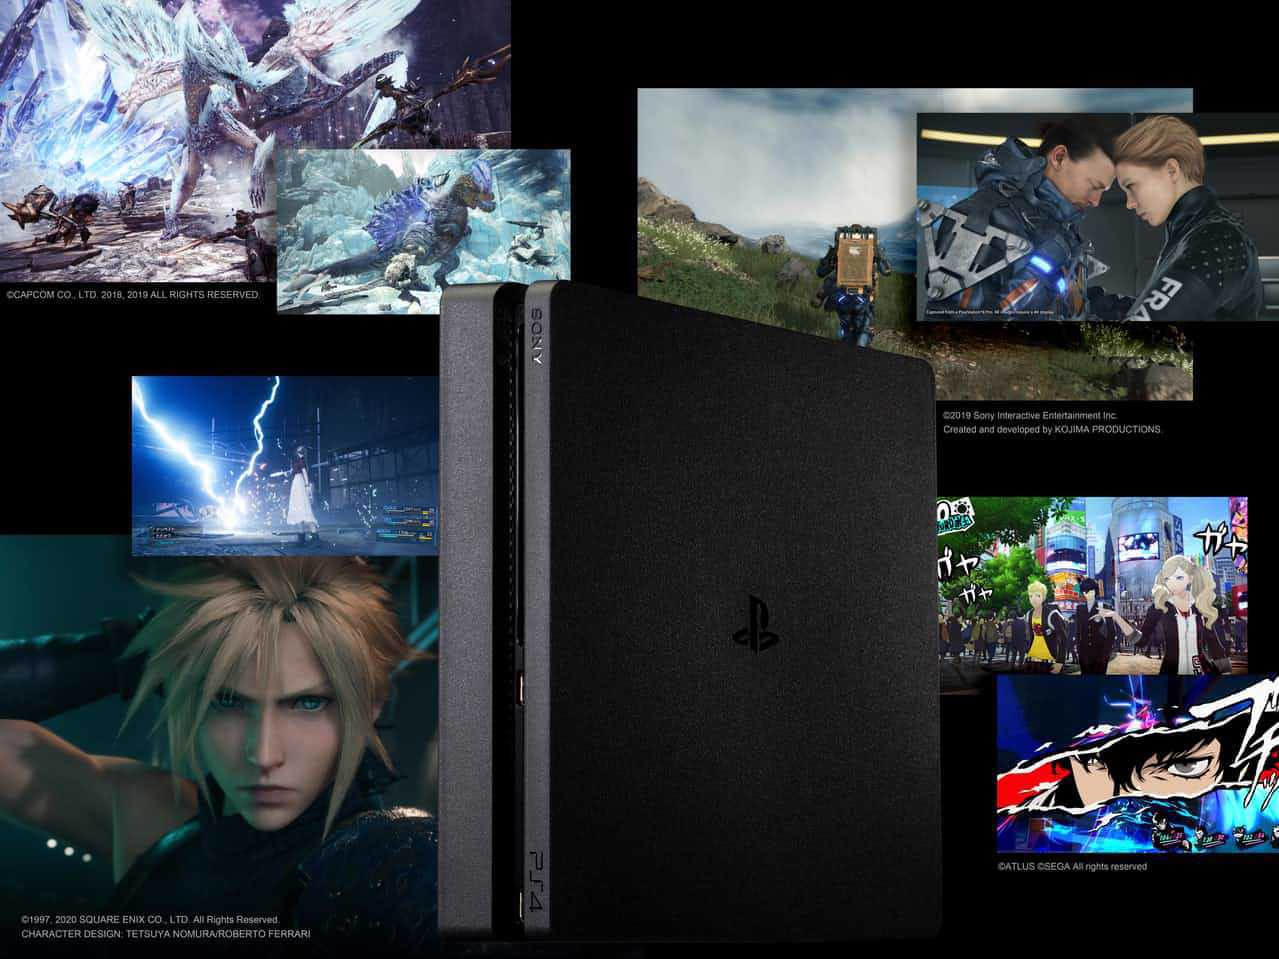 Talented creators have produced a number of hit video games for the PS4 game console (from top left: Monter Hunter World: Inceborne, Death Stranding, Persona5 and Final Fantasy VII Remake)